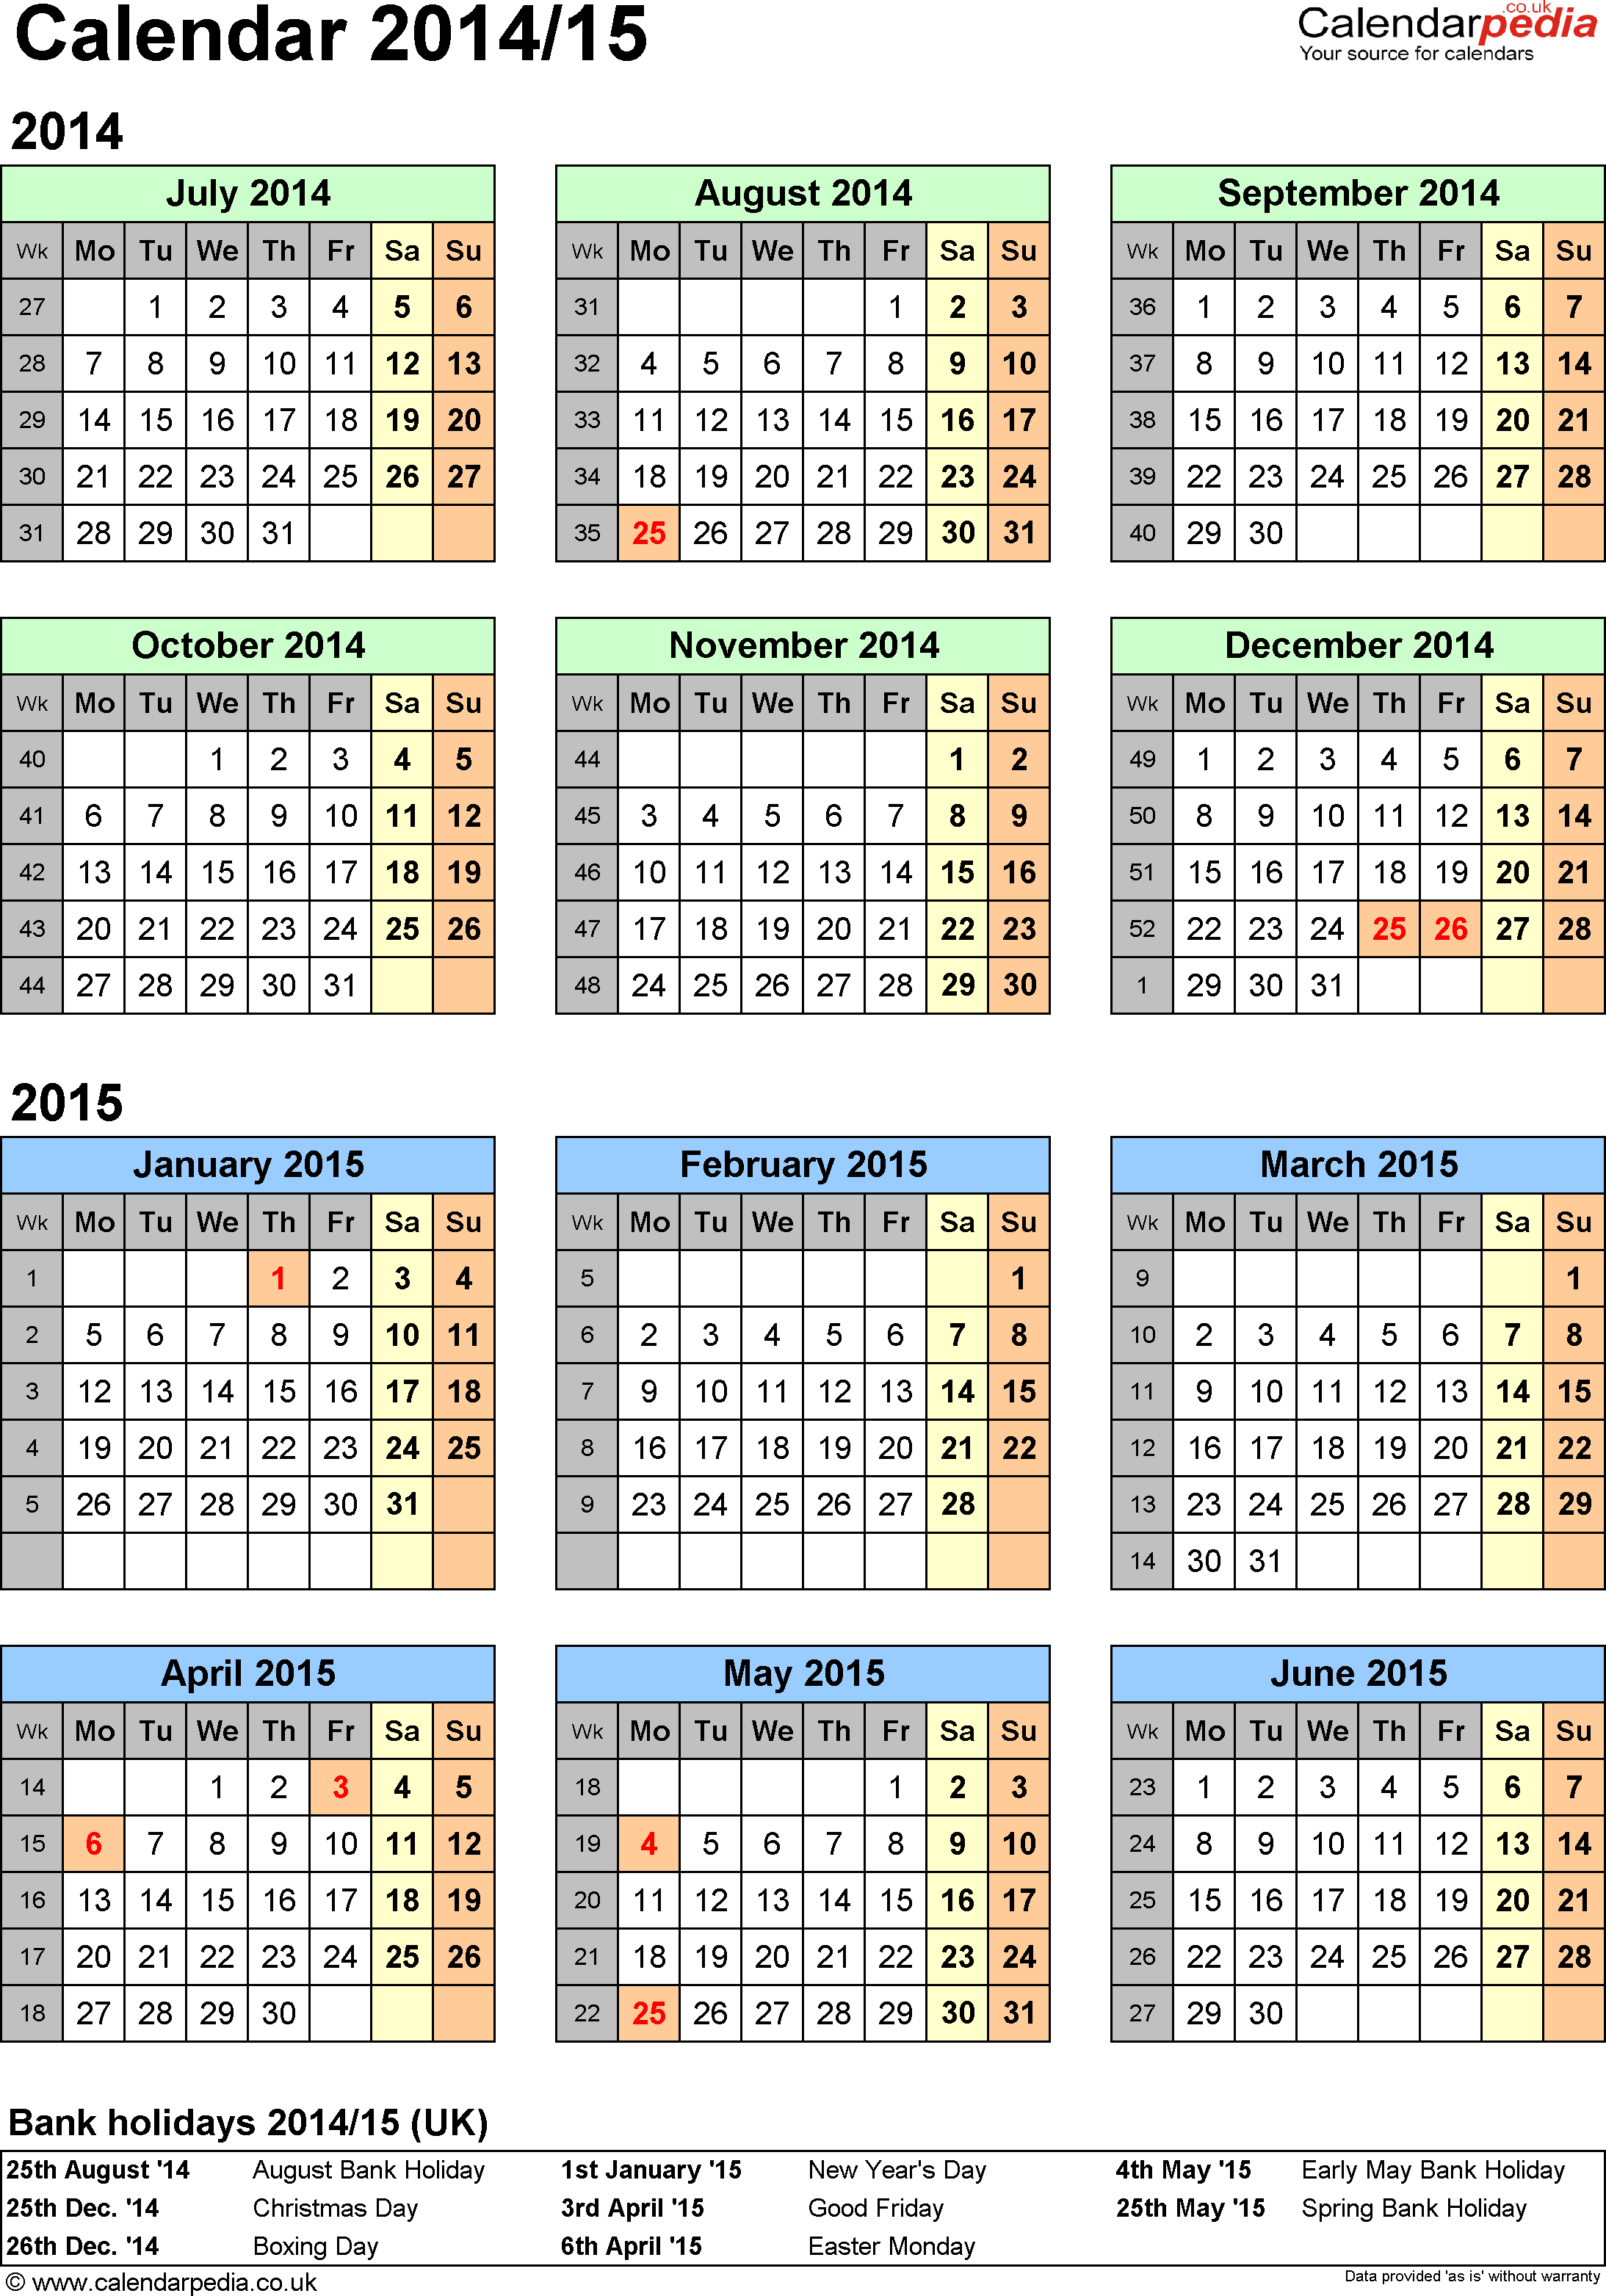 Download Template 2: Word template for split year calendar 2014/2015 (portrait orientation, 1 page, A4)